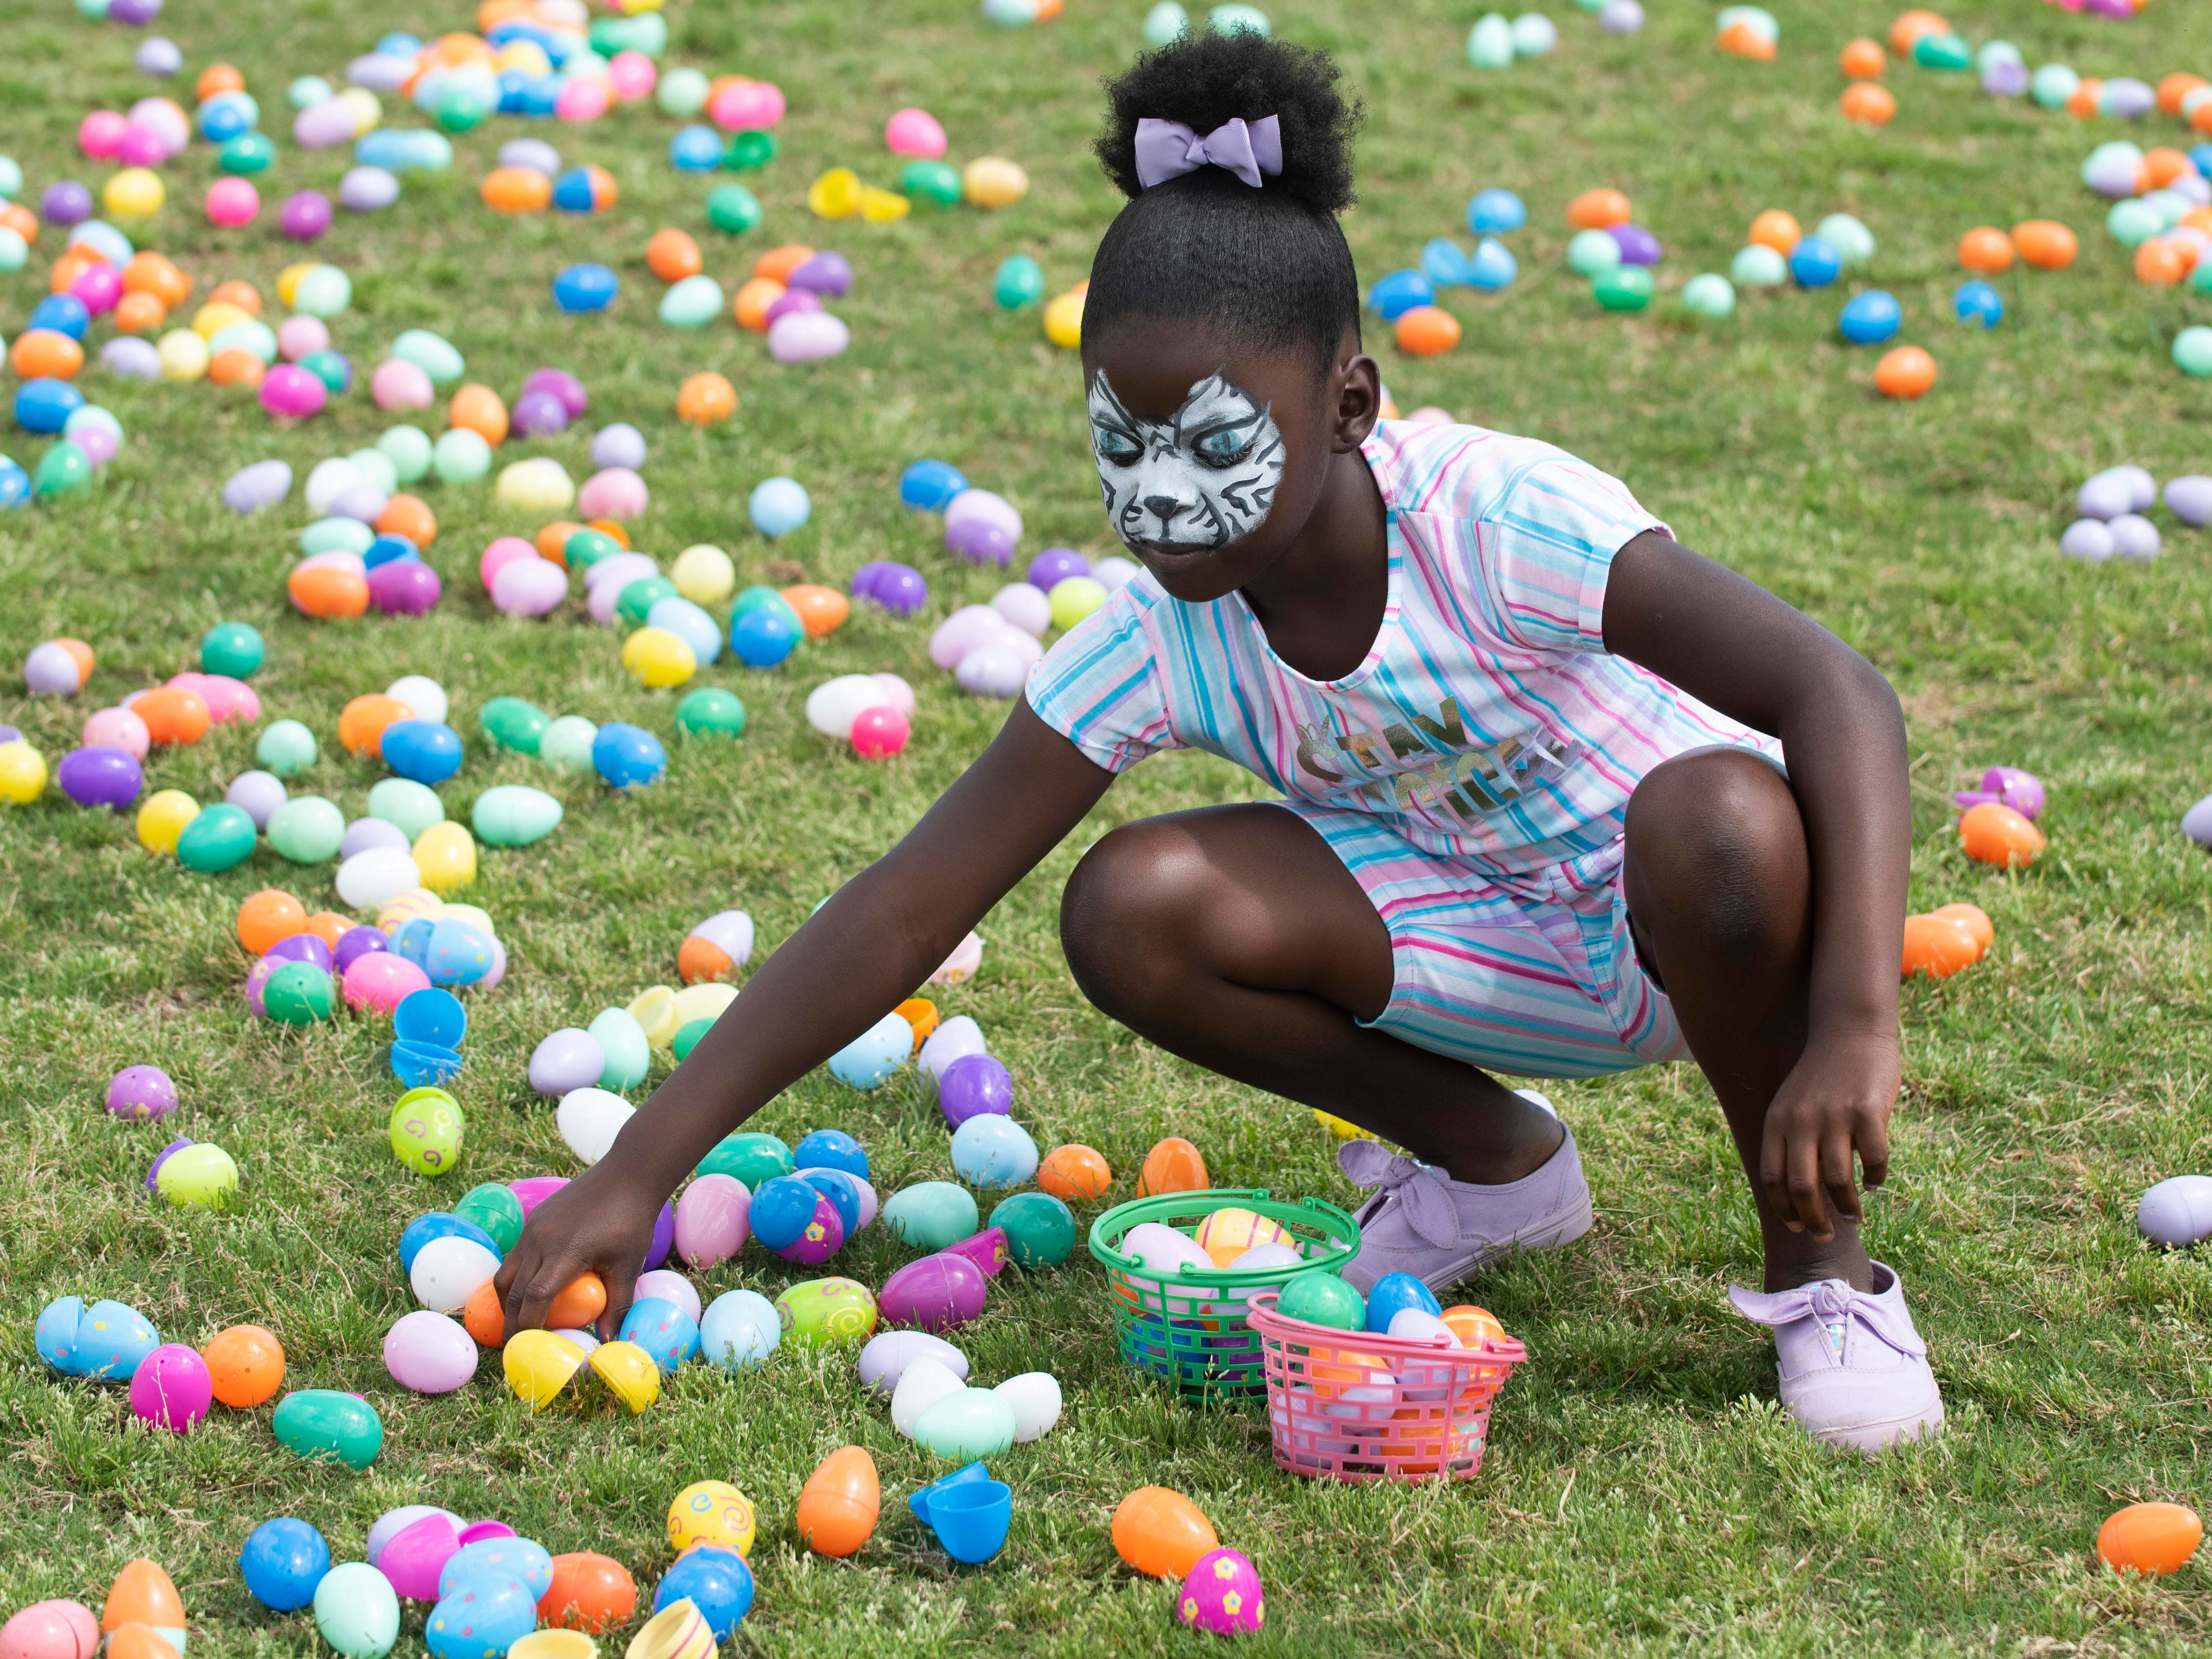 """Rhylie Straughter, 7, of Stuart, picks up plastic eggs during the Spring Community Mixer and Egg Hunt on Saturday, April 13, 2019, at the 10th Street Community Center Guy Davis Sports Complex in Stuart. The hunt was divided into four, separate age groups. Children picked up the eggs and traded them in for bags of candy.  """"It's nice to do these things around the holidays to get the community out and give them a free event to enjoy with their family and a place where they can meet other members of the community and learn what's going in their area,"""" said Jessica Tharp (not pictured), the recreation program supervisor for the City of Stuart and the organizer of the event. The mixer also included golden eggs, face painting, carnival games, inflatables and free popcorn, snow cones and a hot dog lunch."""